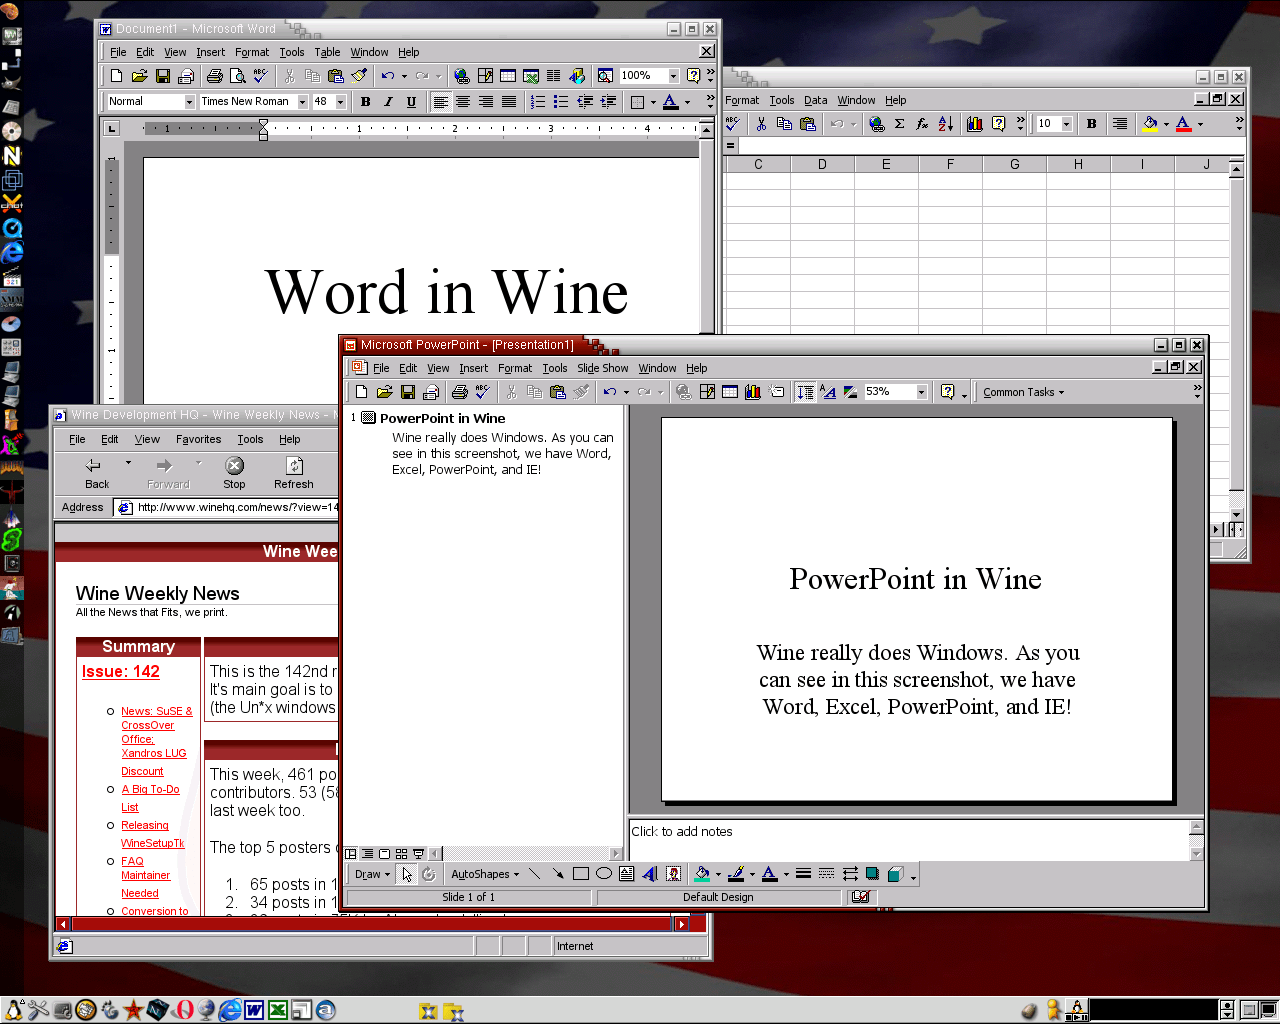 Wine's screenshot